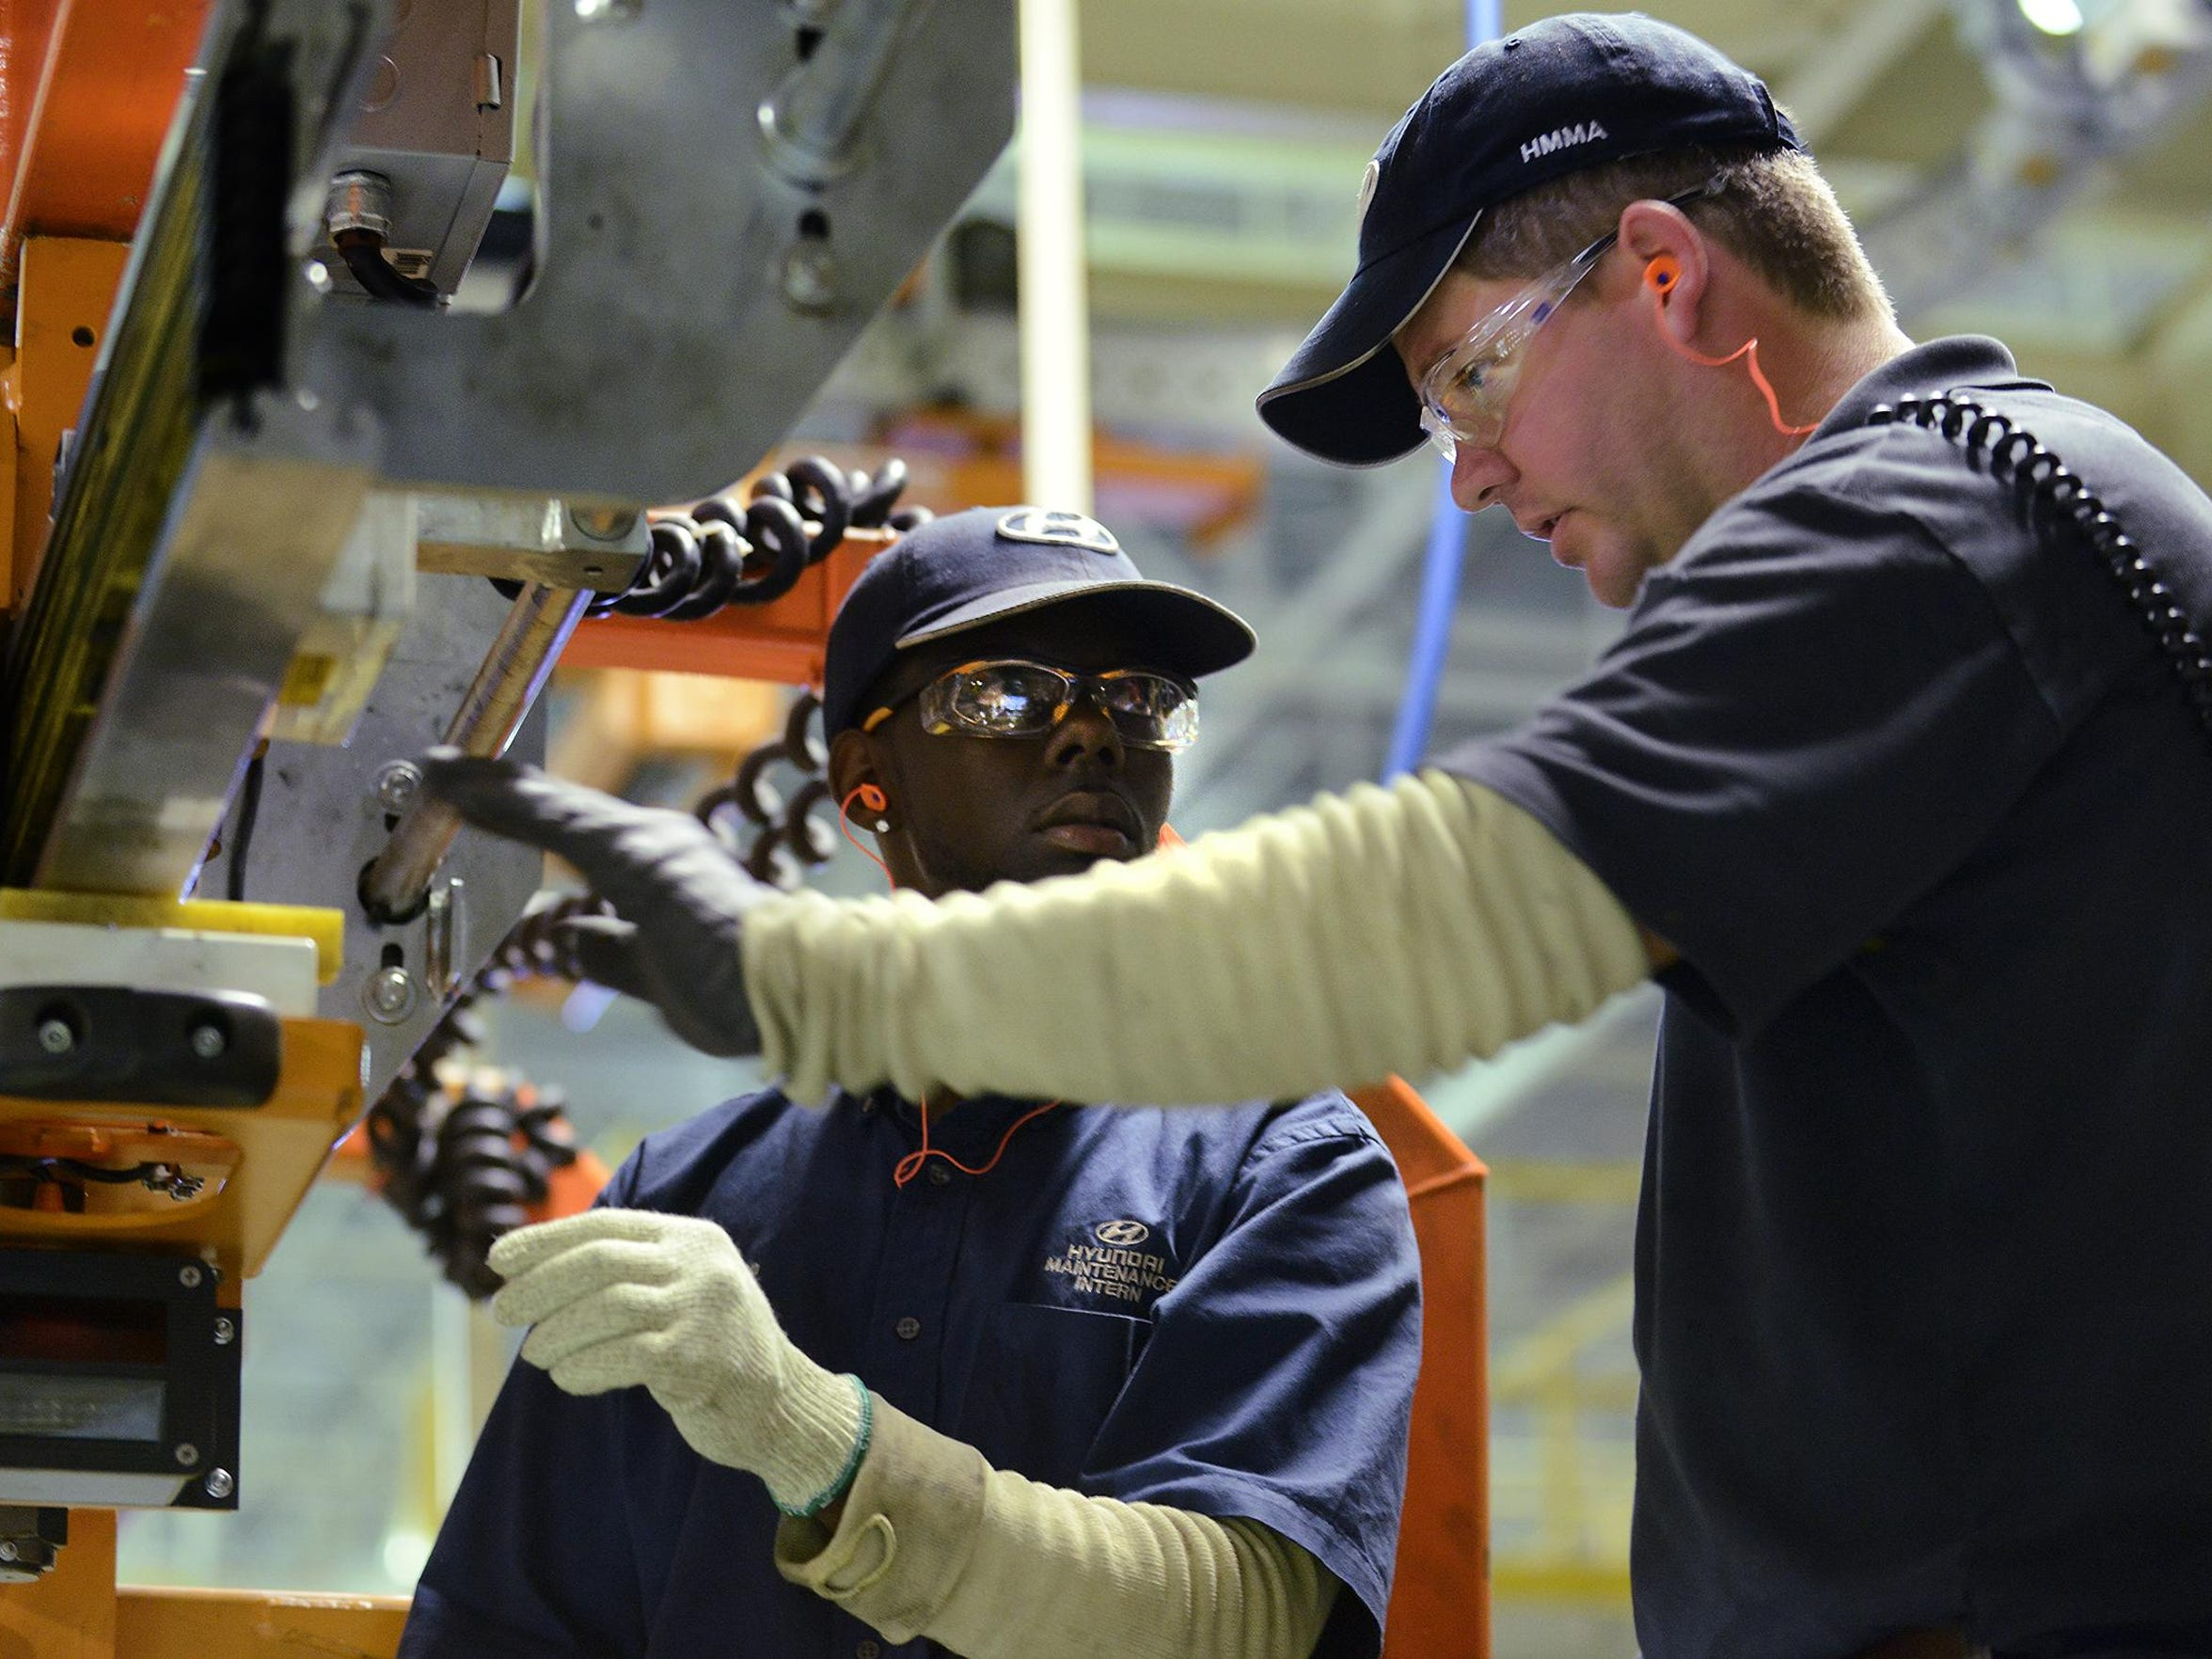 Trenholm State Technical College student Darien Fails, left, is instructed by Ben Rieves in the stamping shop at Hyundai Motor Manufacturing in Montgomery, Ala. in August of 2014 as part of a student hands-on program at the plant.